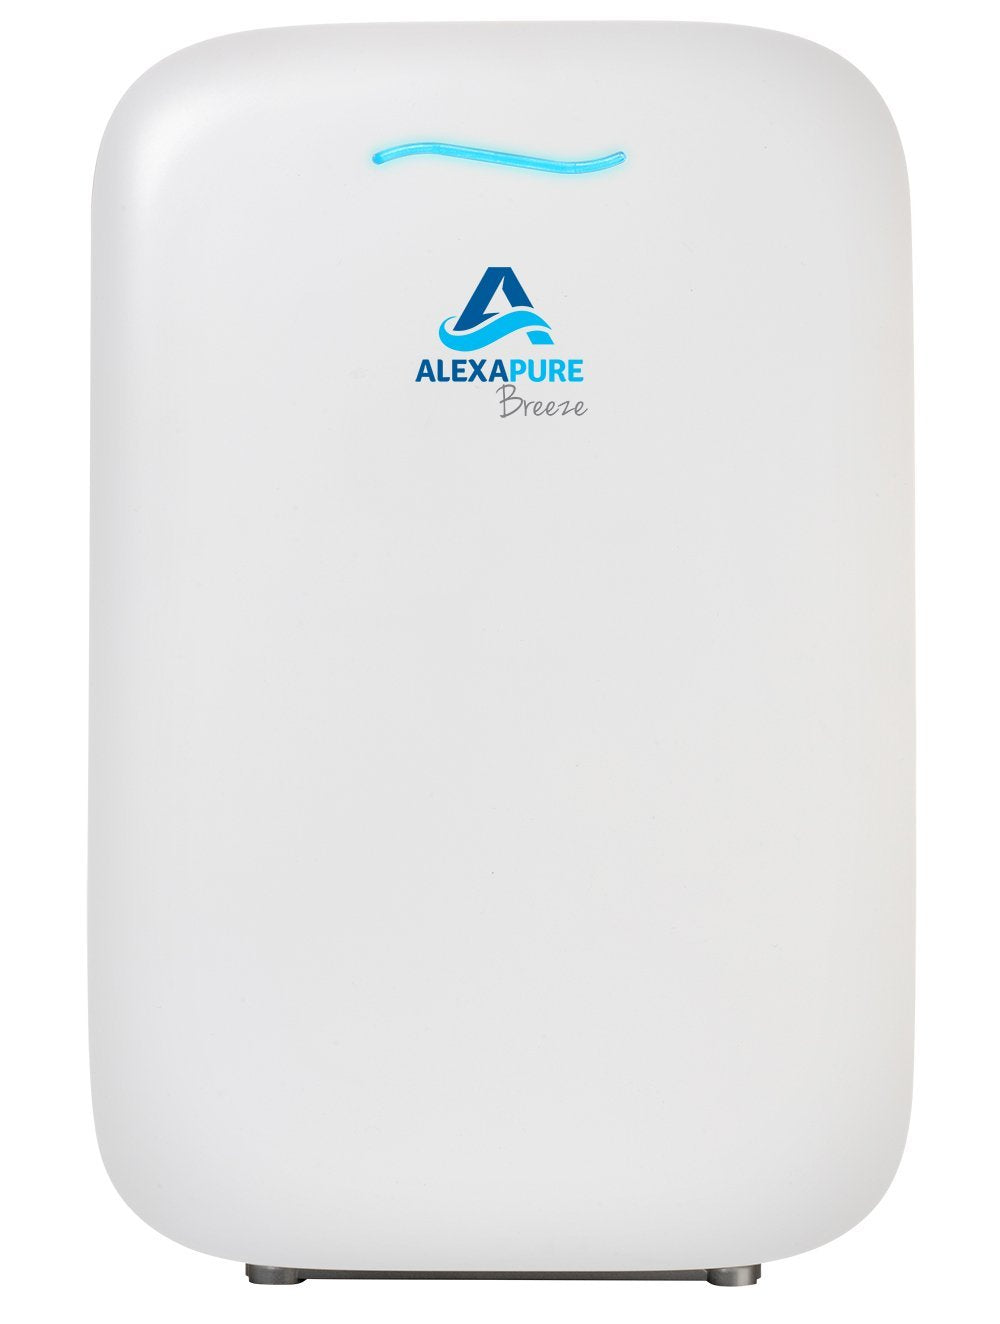 Alexapure 3049 Breeze Energy-Efficient True HEPA + IonCluster Air Purification S